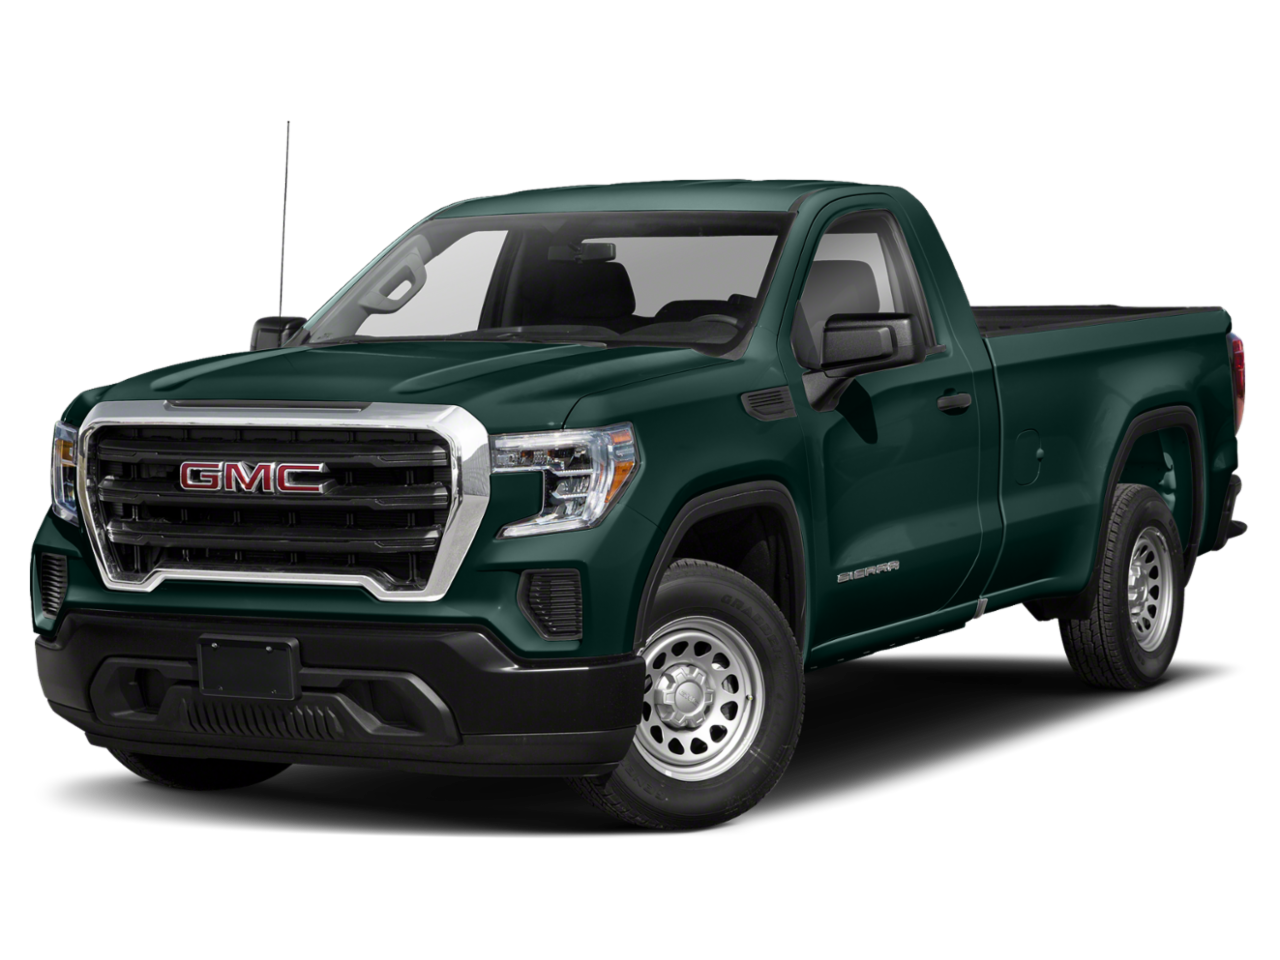 GMC 2021 Sierra 1500 Regular Cab Long Box 2-Wheel Drive